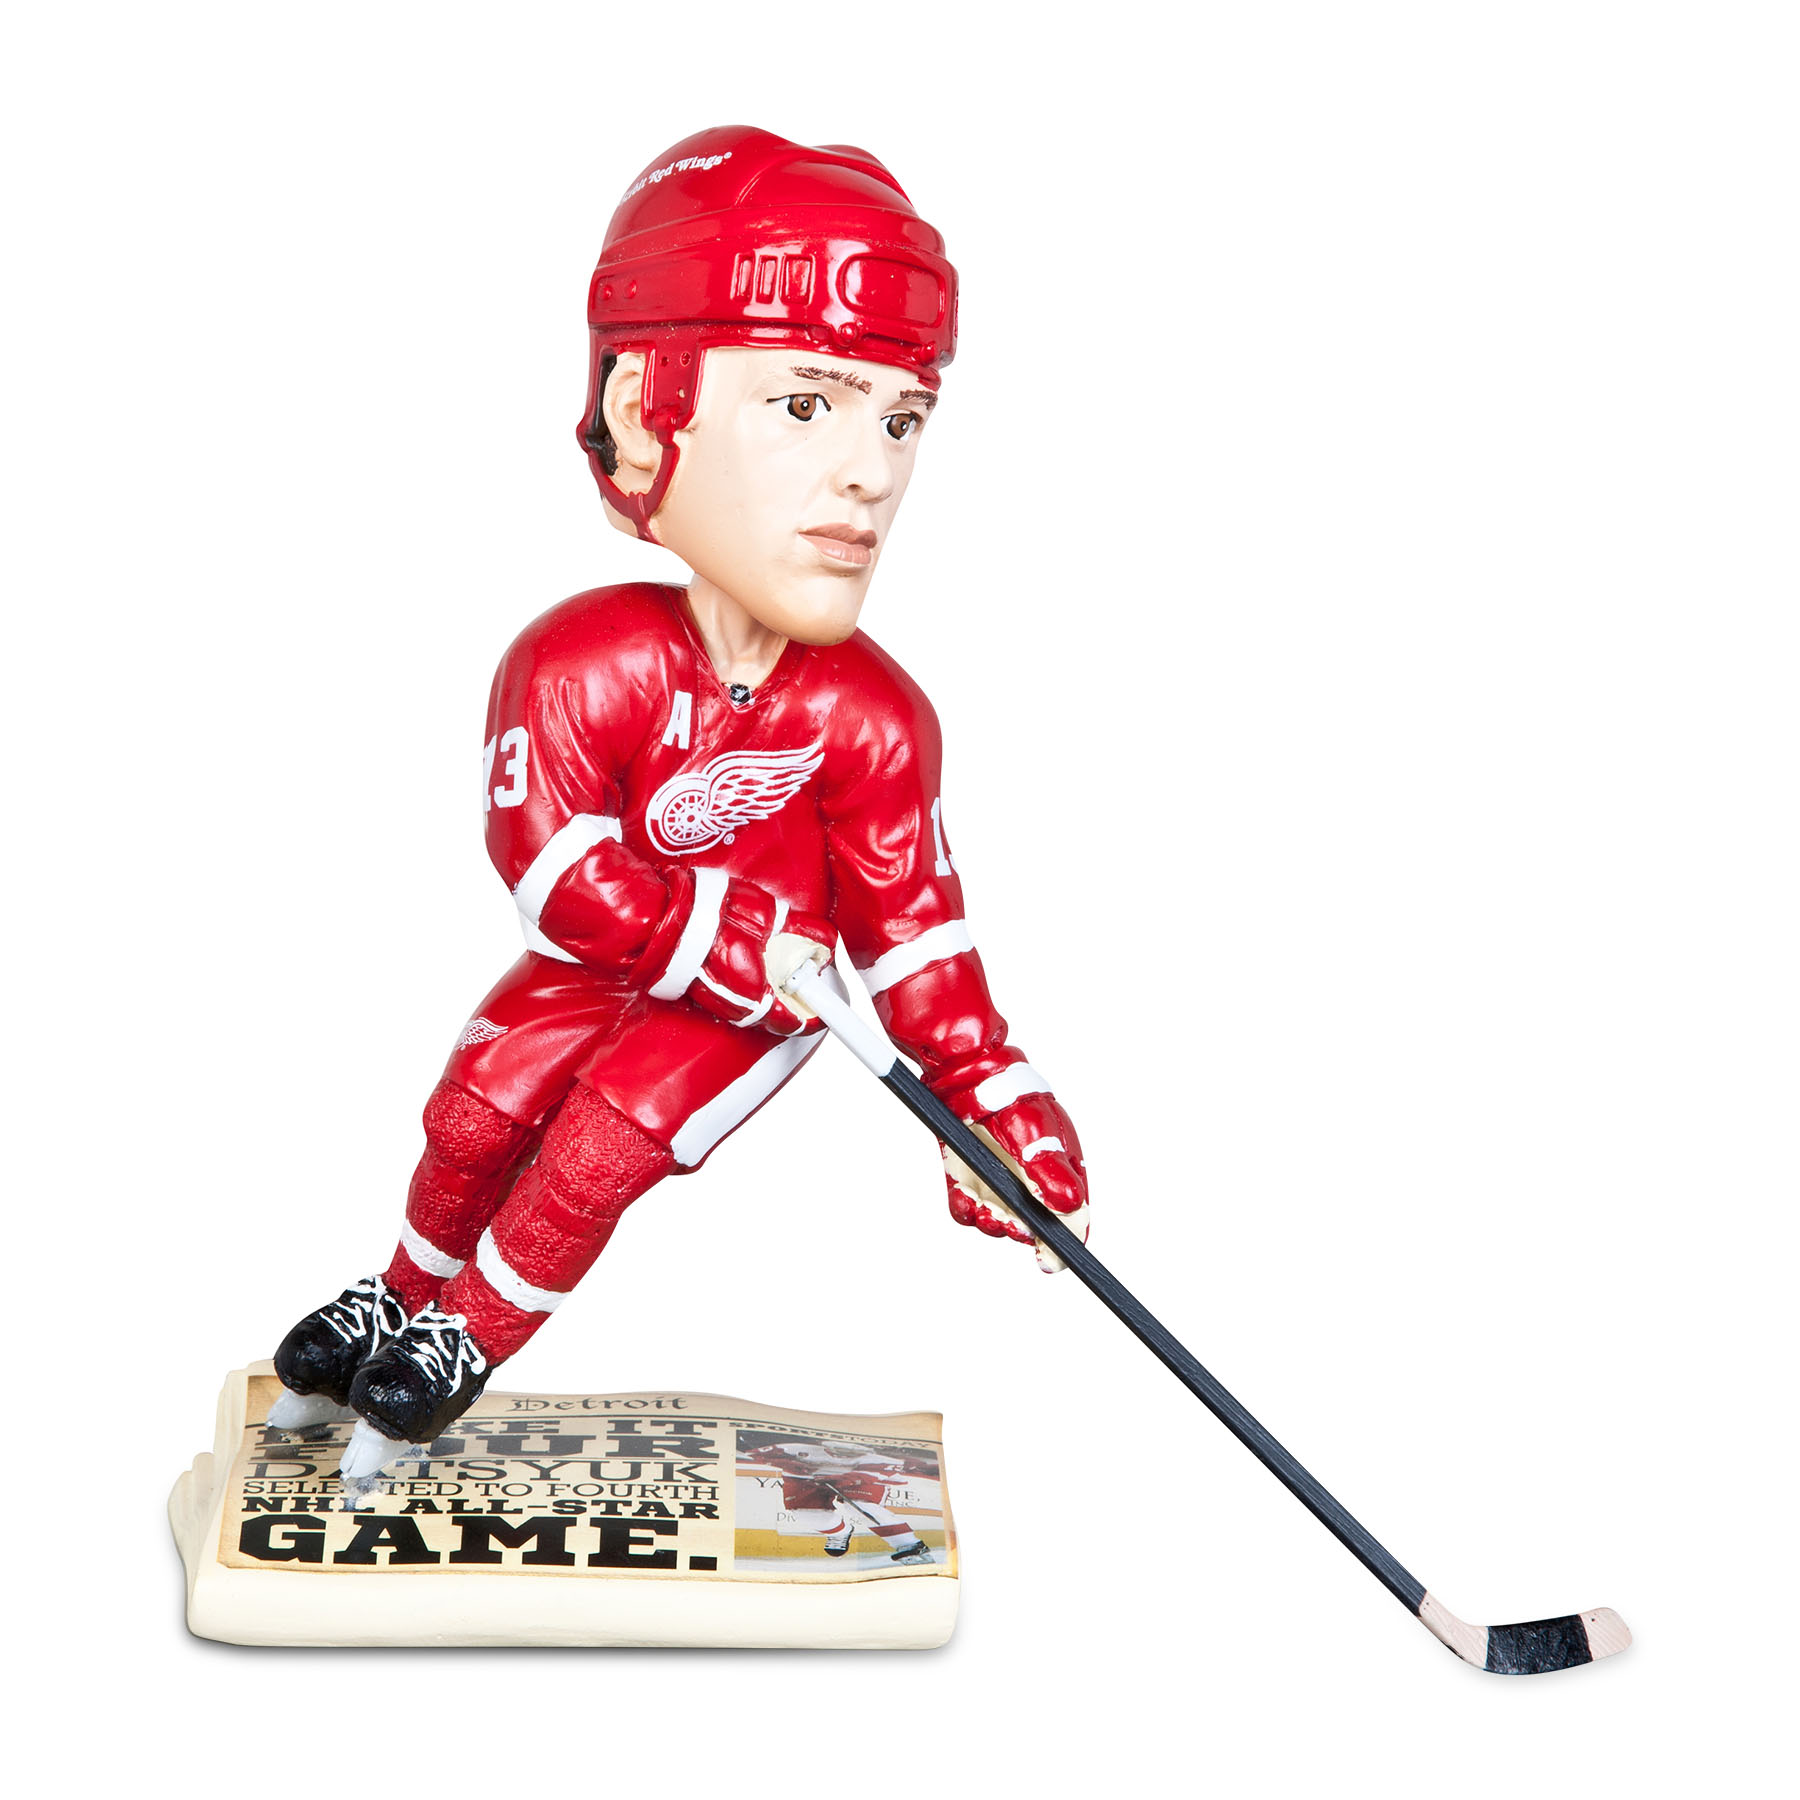 Detroit Red Wings Pavel Datsyuk 13 Bobblehead